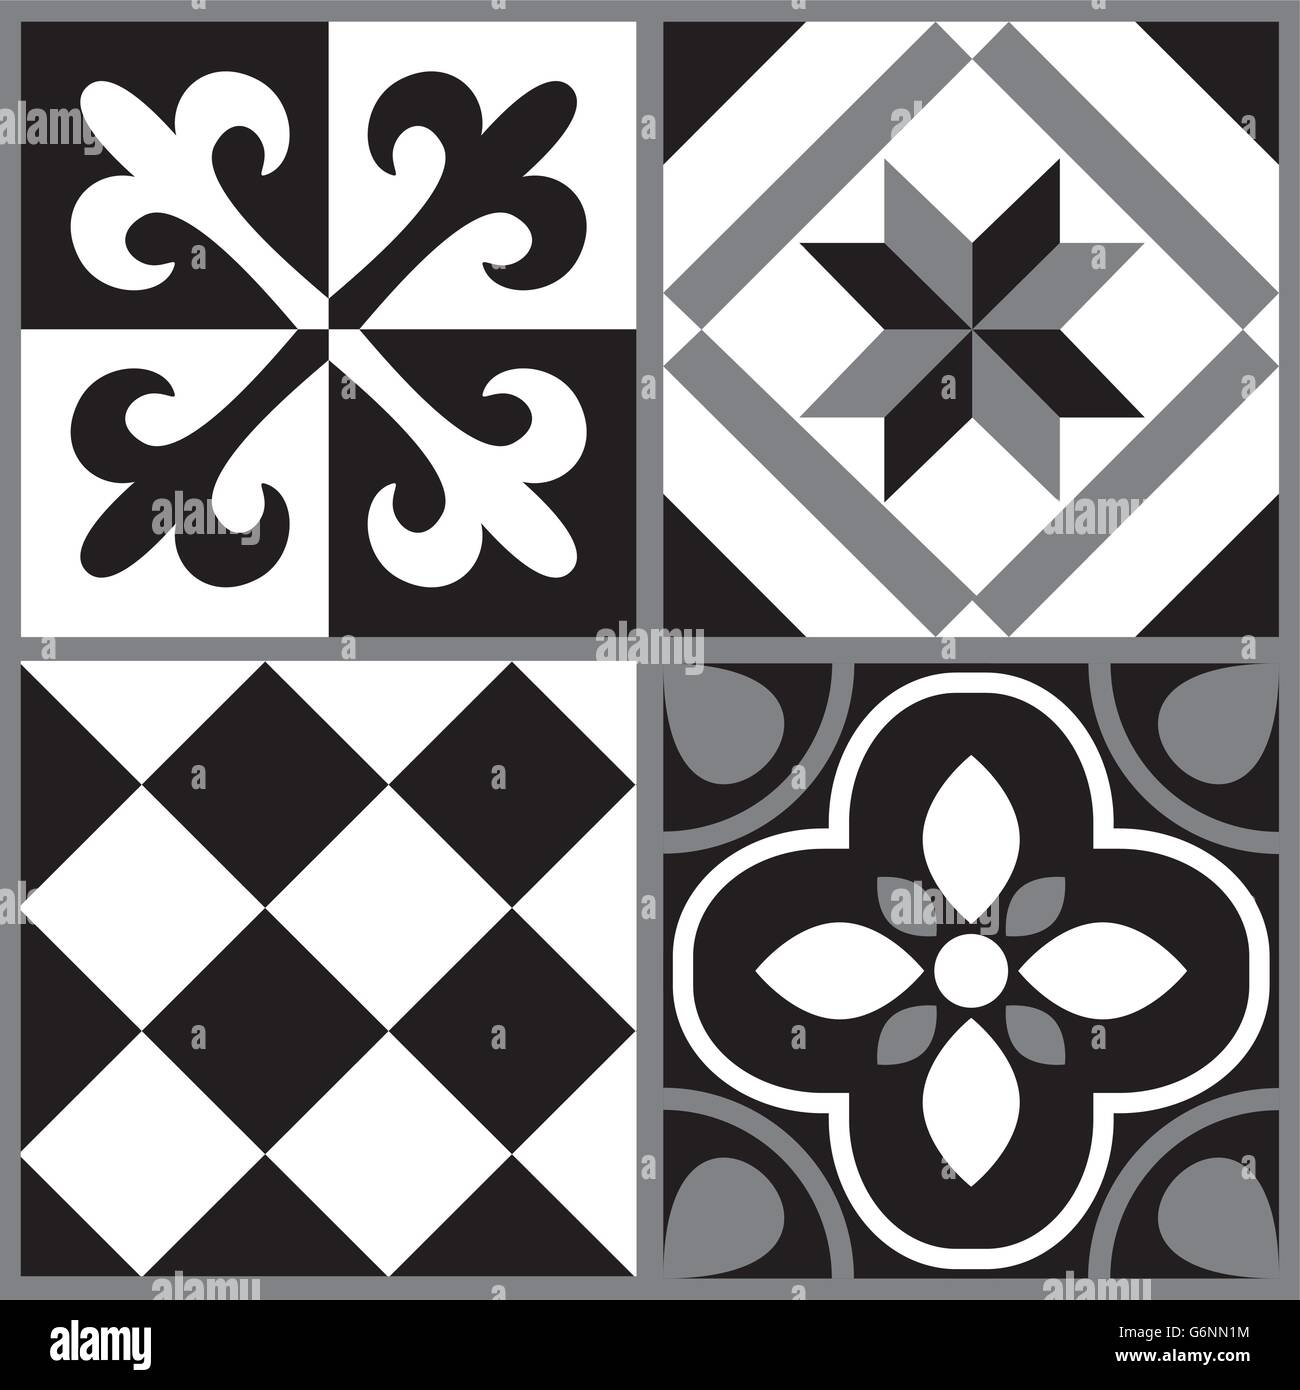 Black and white cement tile background design stock vector for White cement tiles